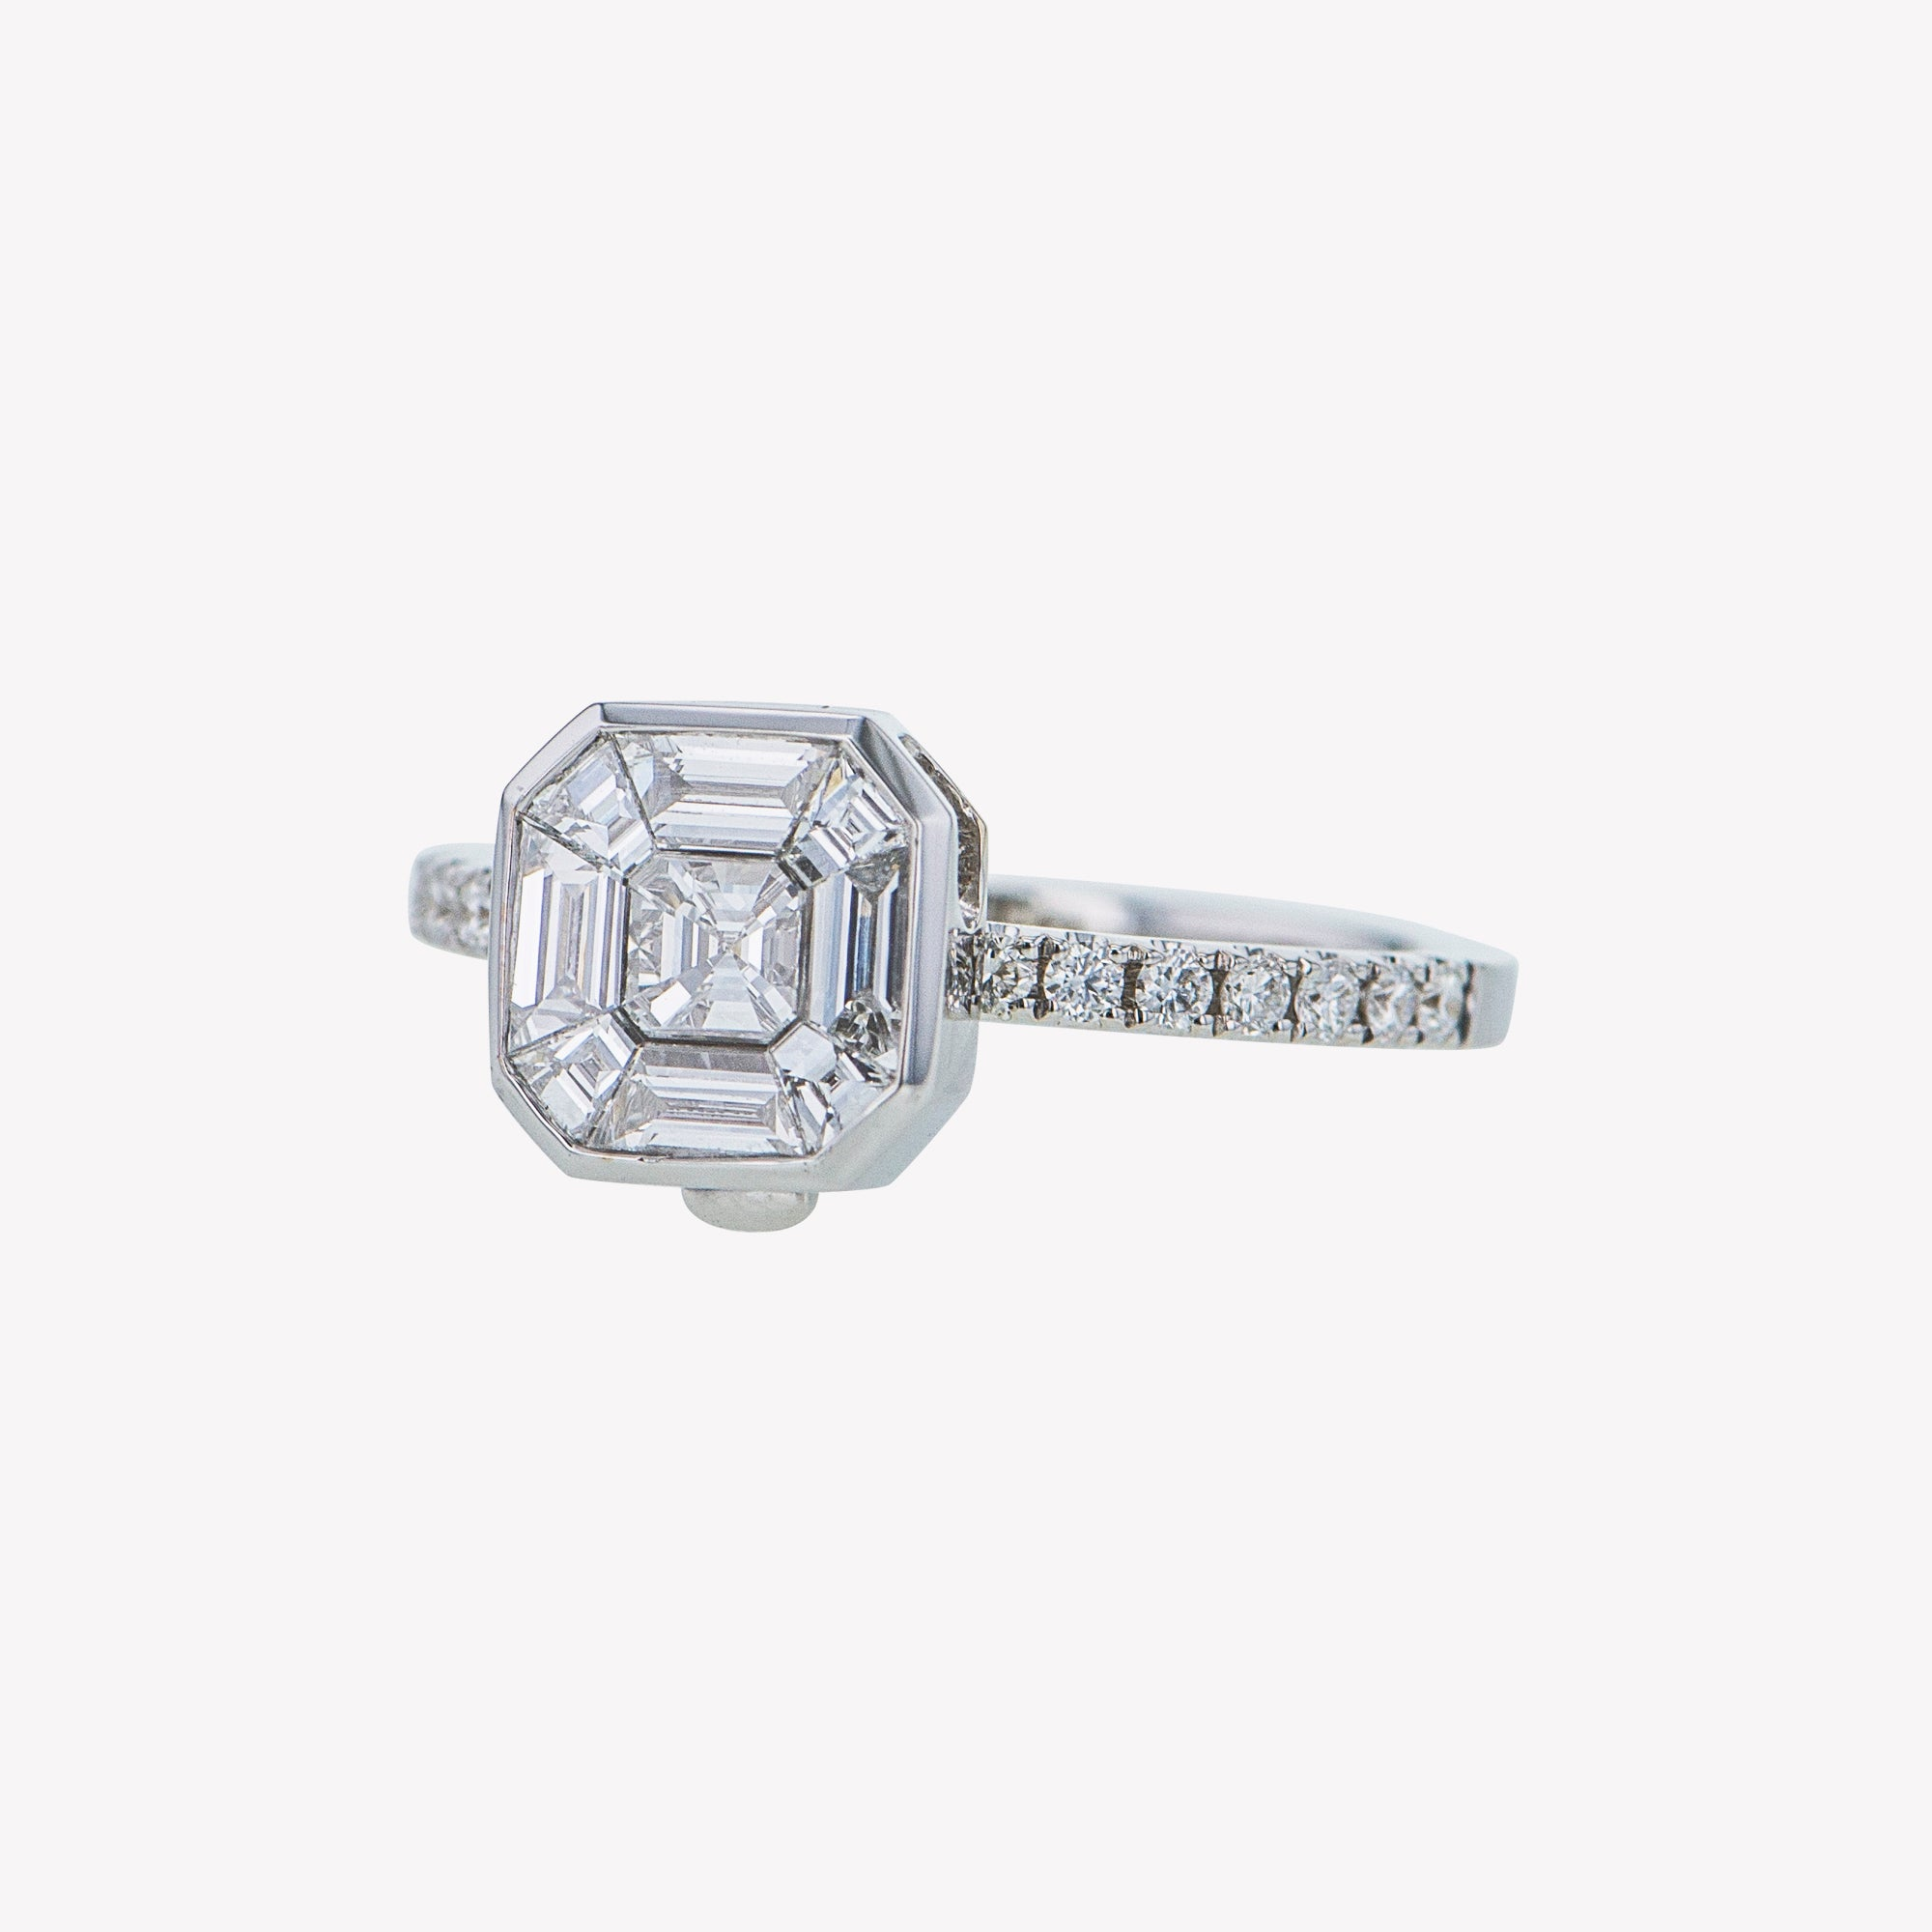 Detachable White Gold Asscher Head with Round Diamond Band